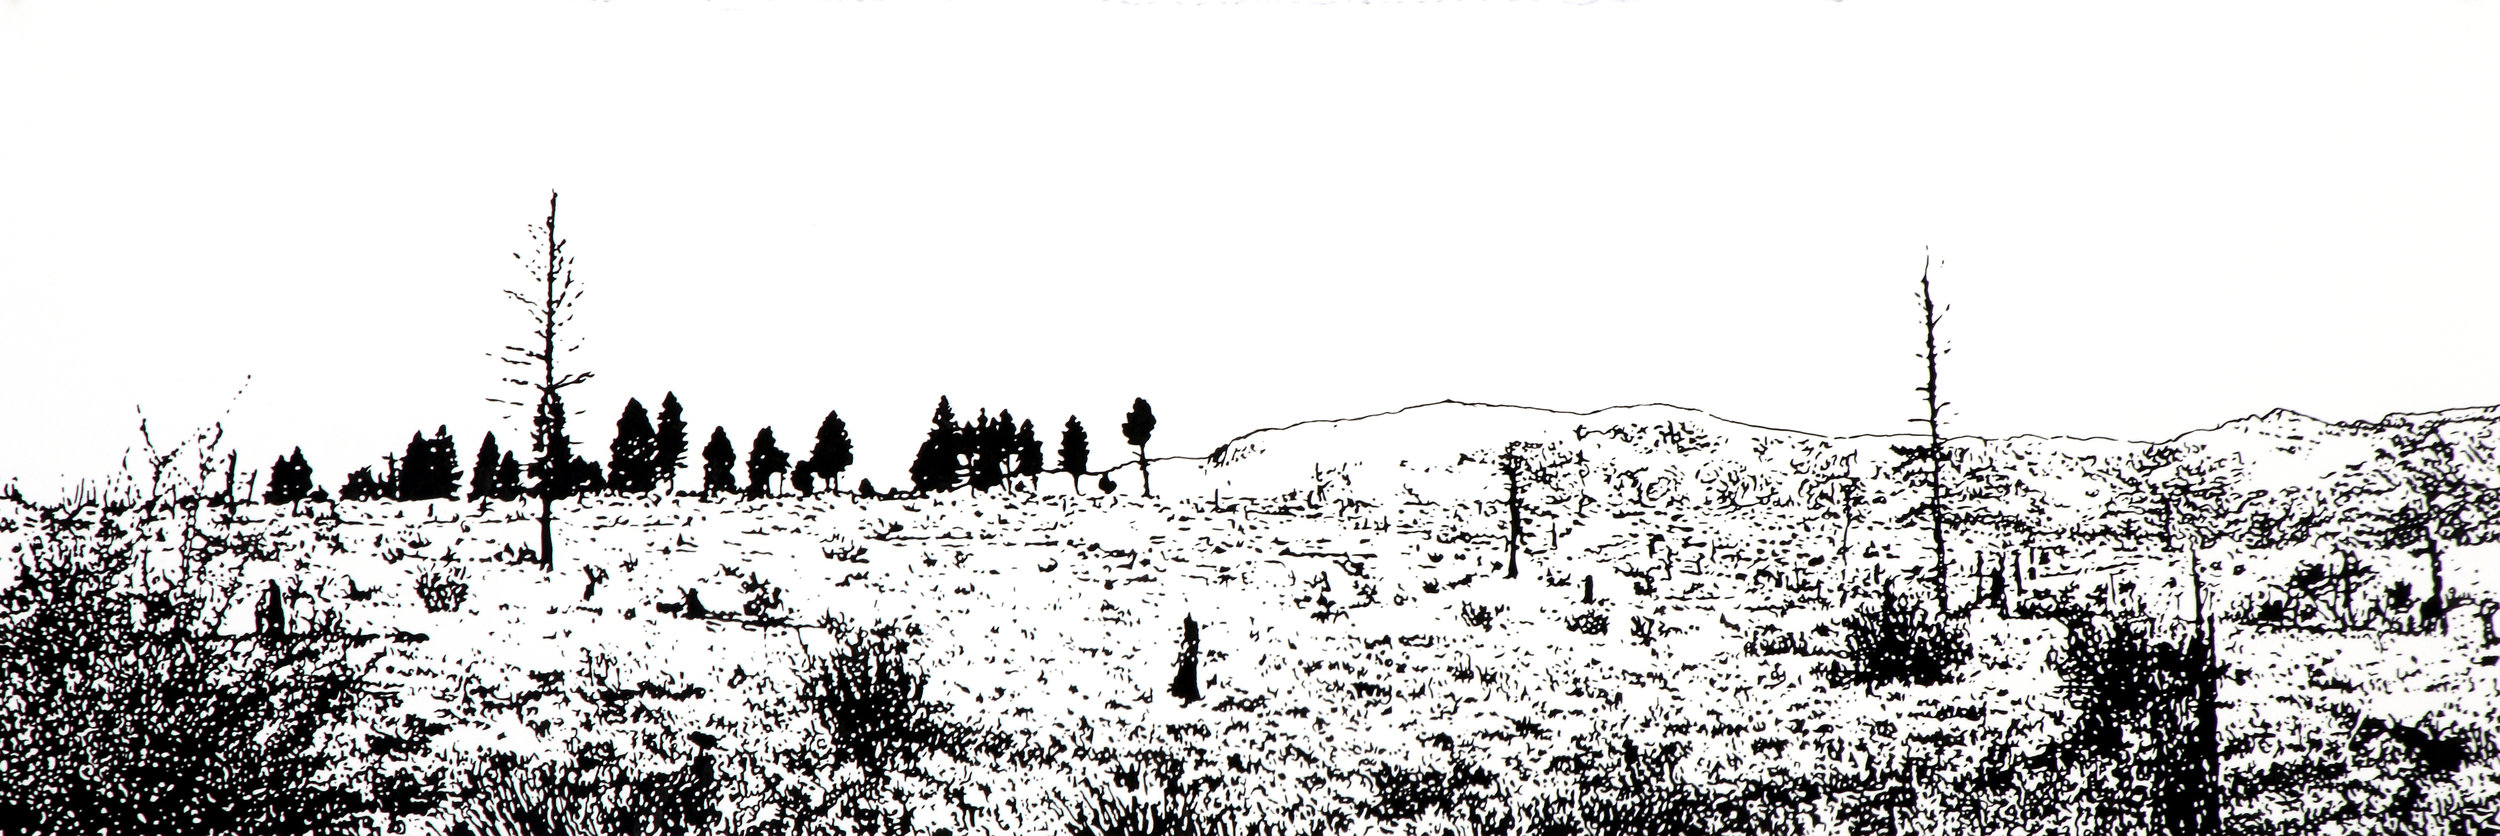 """Sequestered Smoke""  ink drawing on paper  16"" h x 42"" w  framed  The drawing is animated with animals of the Hayman Fire burn area  returning to their habitat. It can be animated or not.  (contact the gallery for more information)"